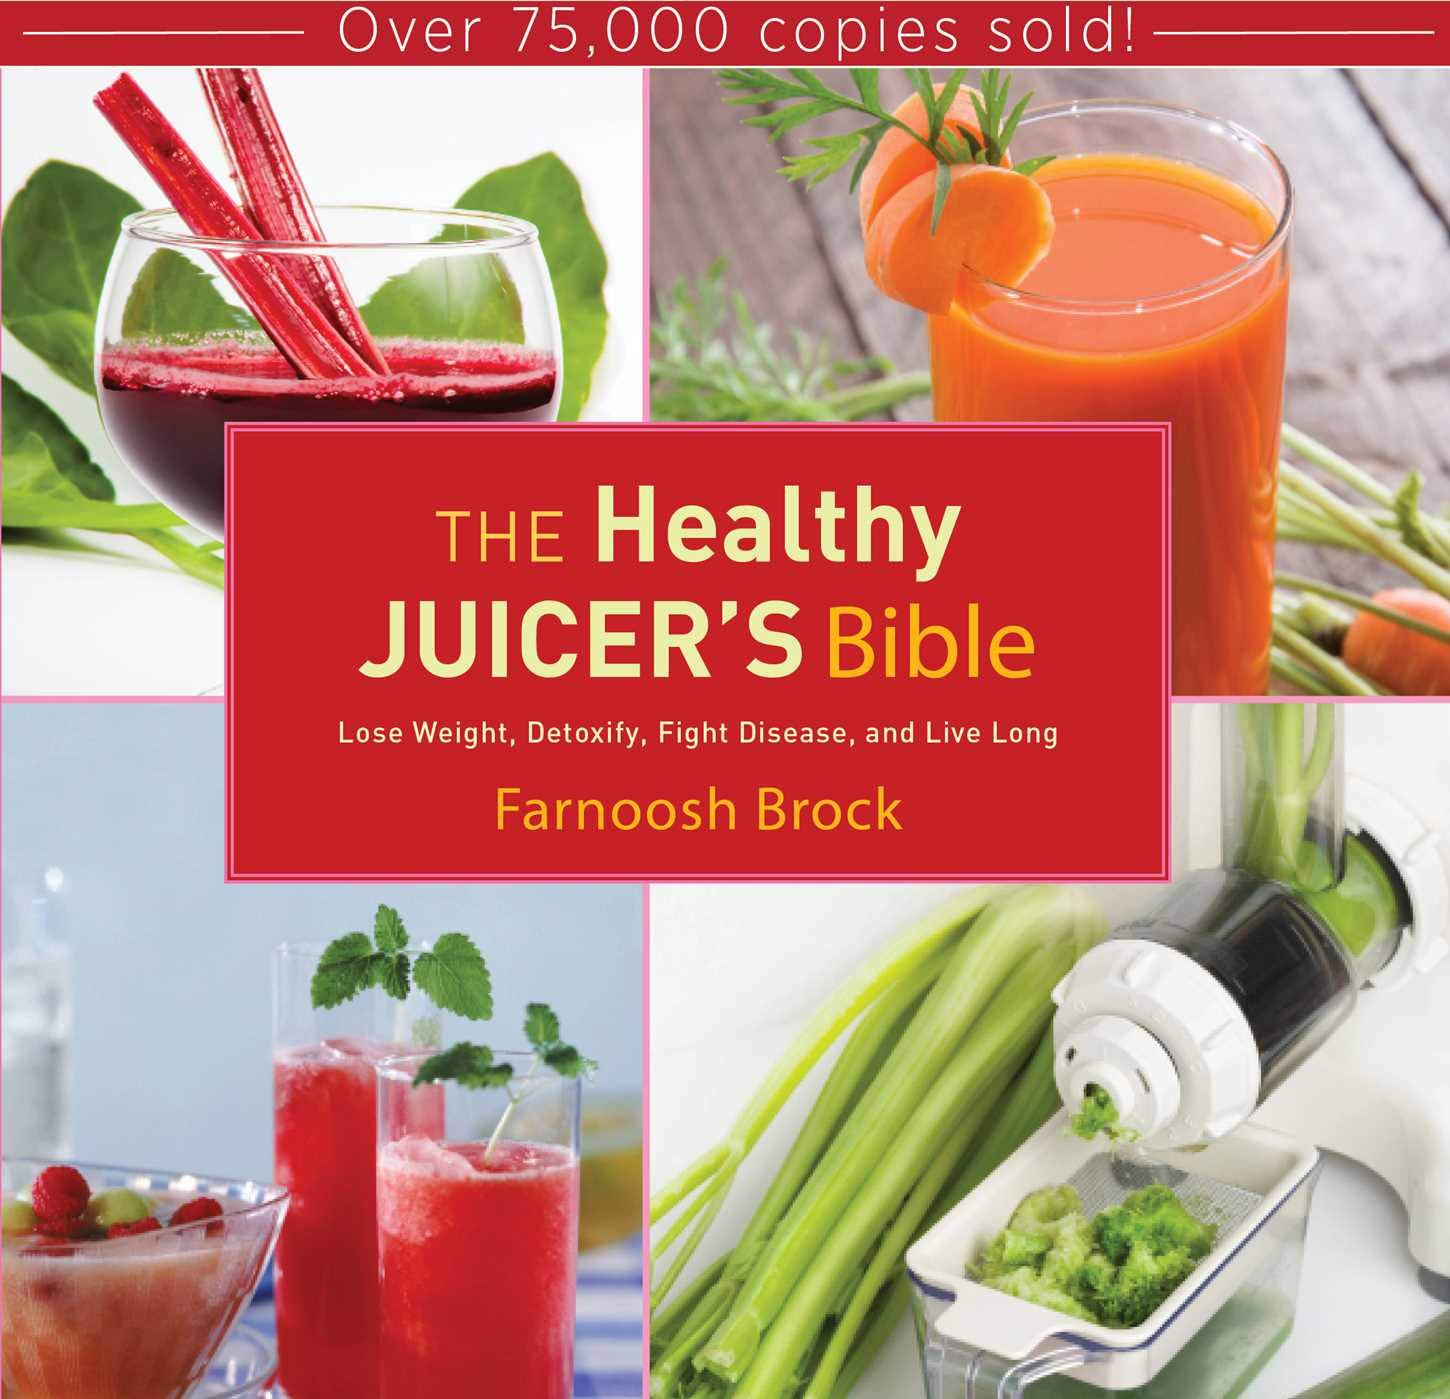 The Healthy Juicer's Bible: Lose Weight, Detoxify, Fight Disease, and Live  Long: Farnoosh Brock: 9781620874035: Amazon.com: Books